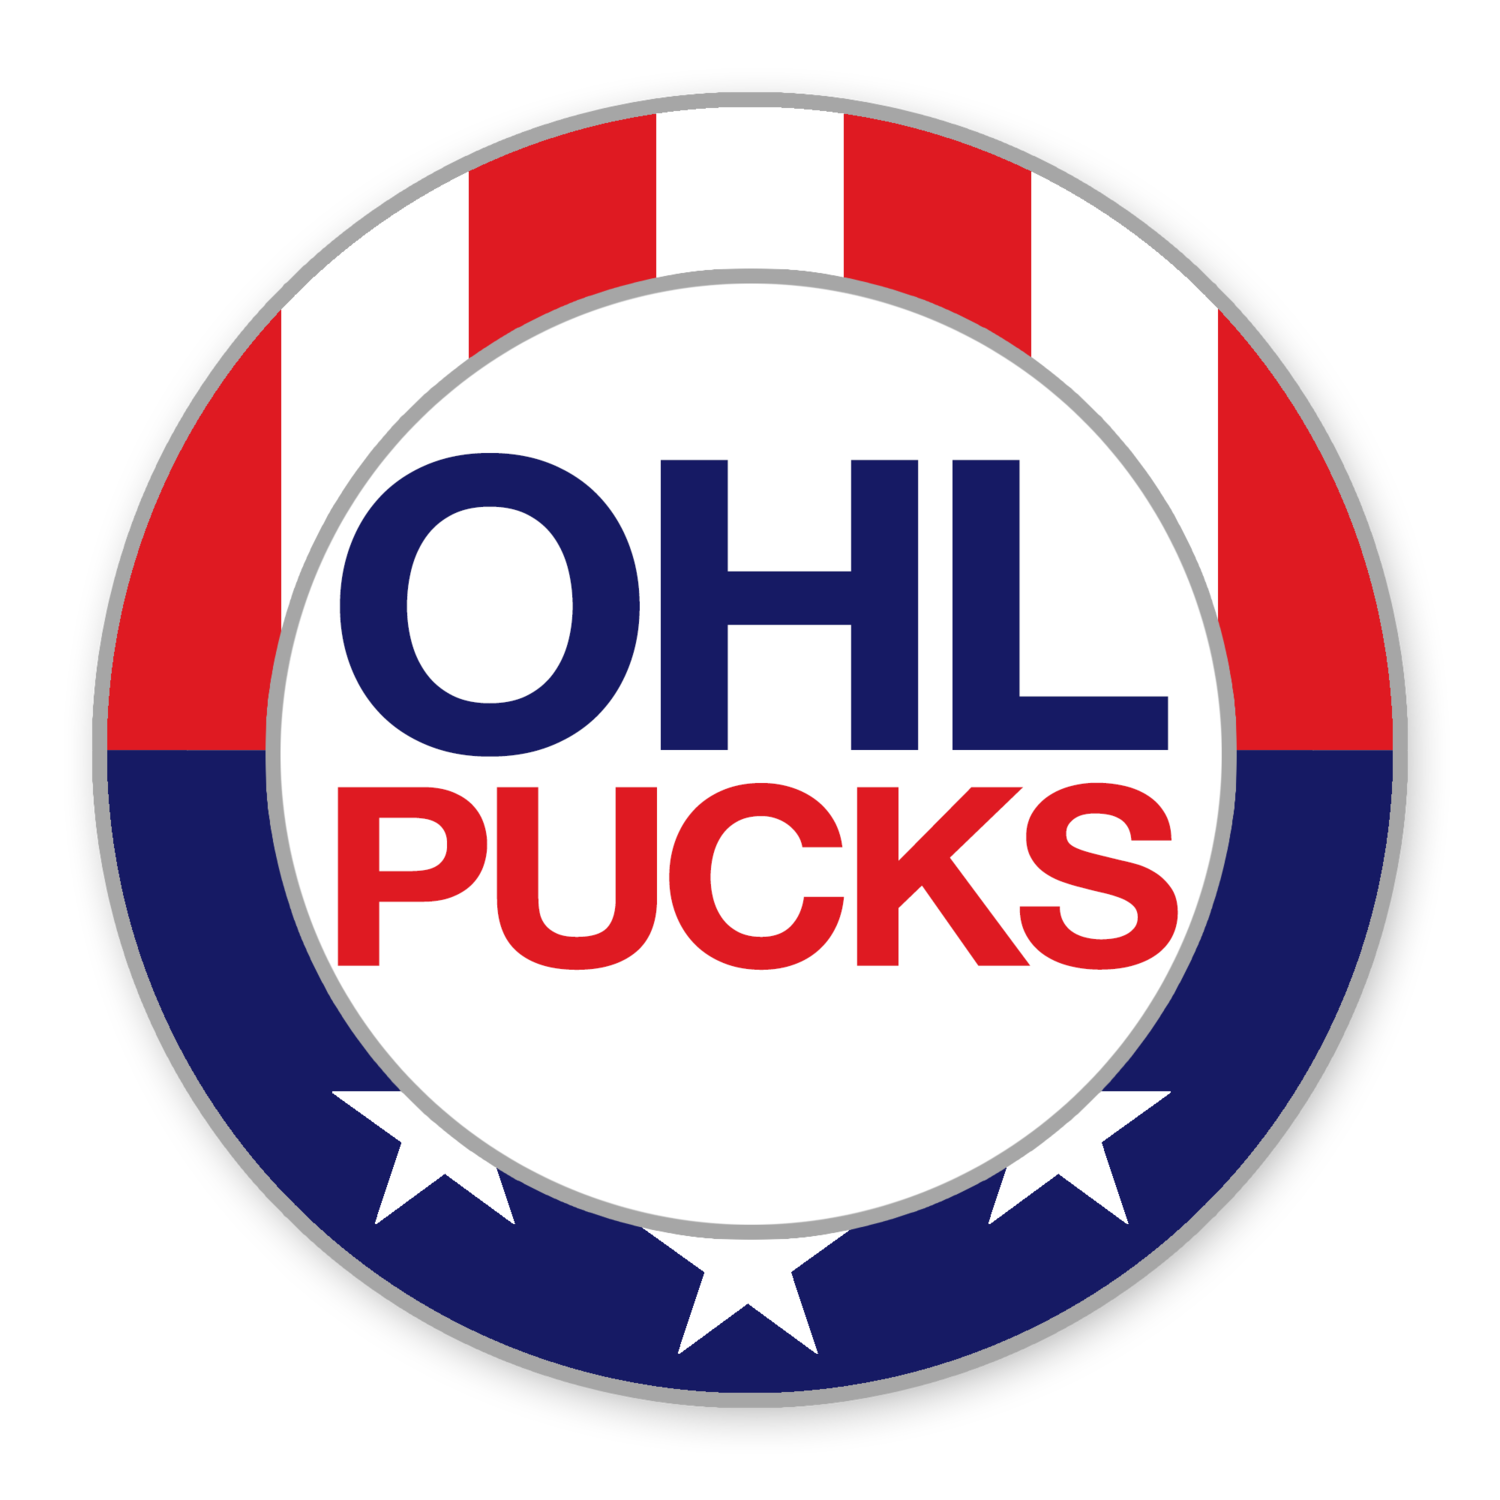 OHL Pucks & Stripes